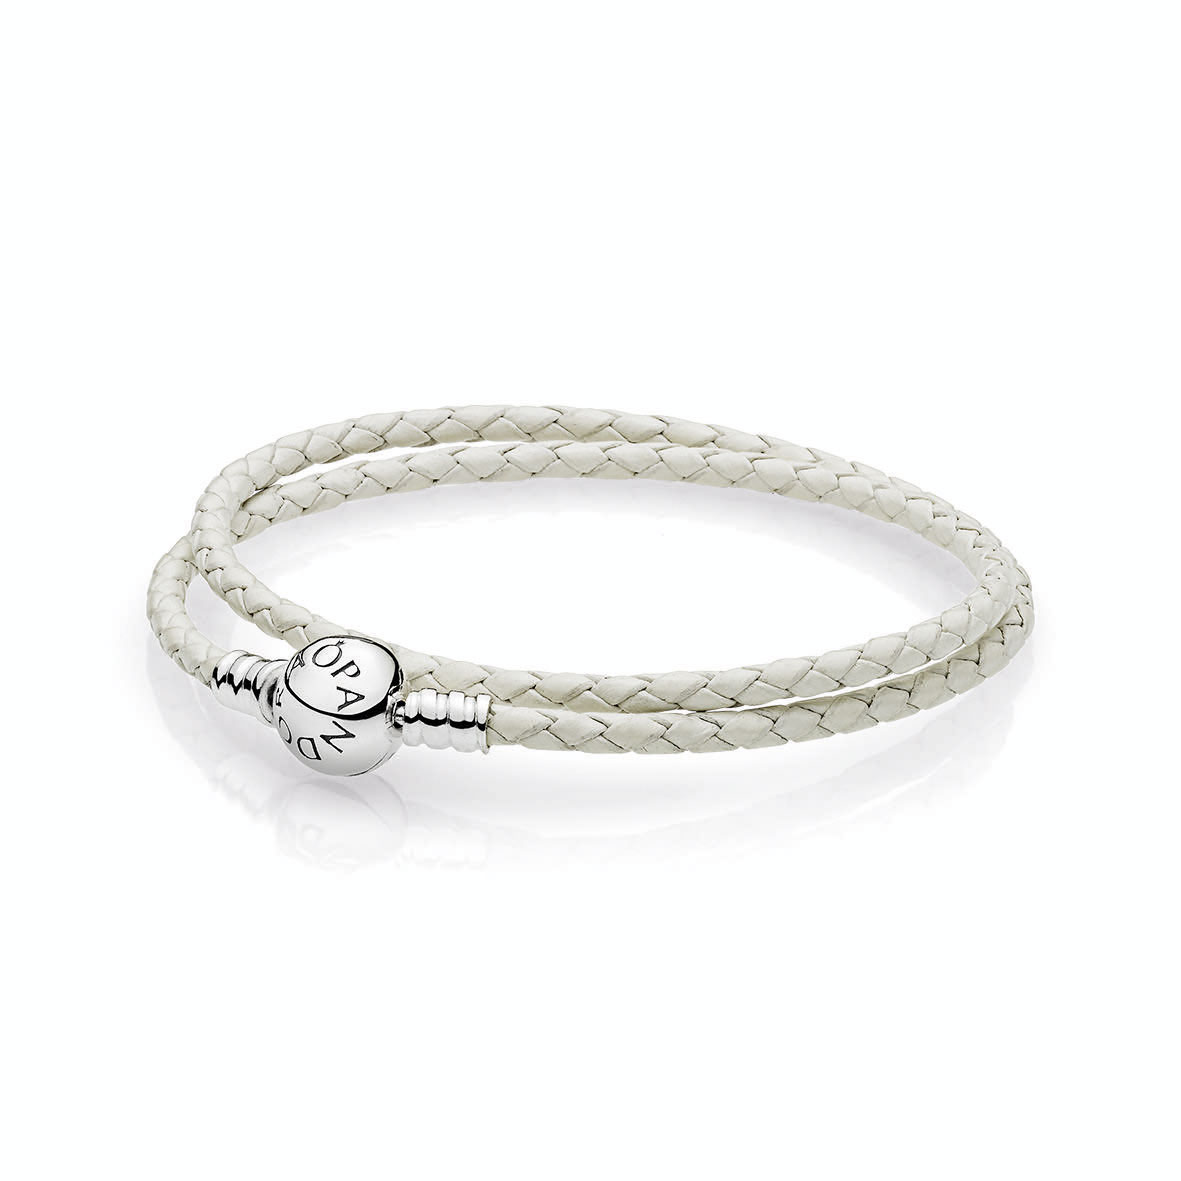 Moments Double Woven Leather Bracelet Ivory White The